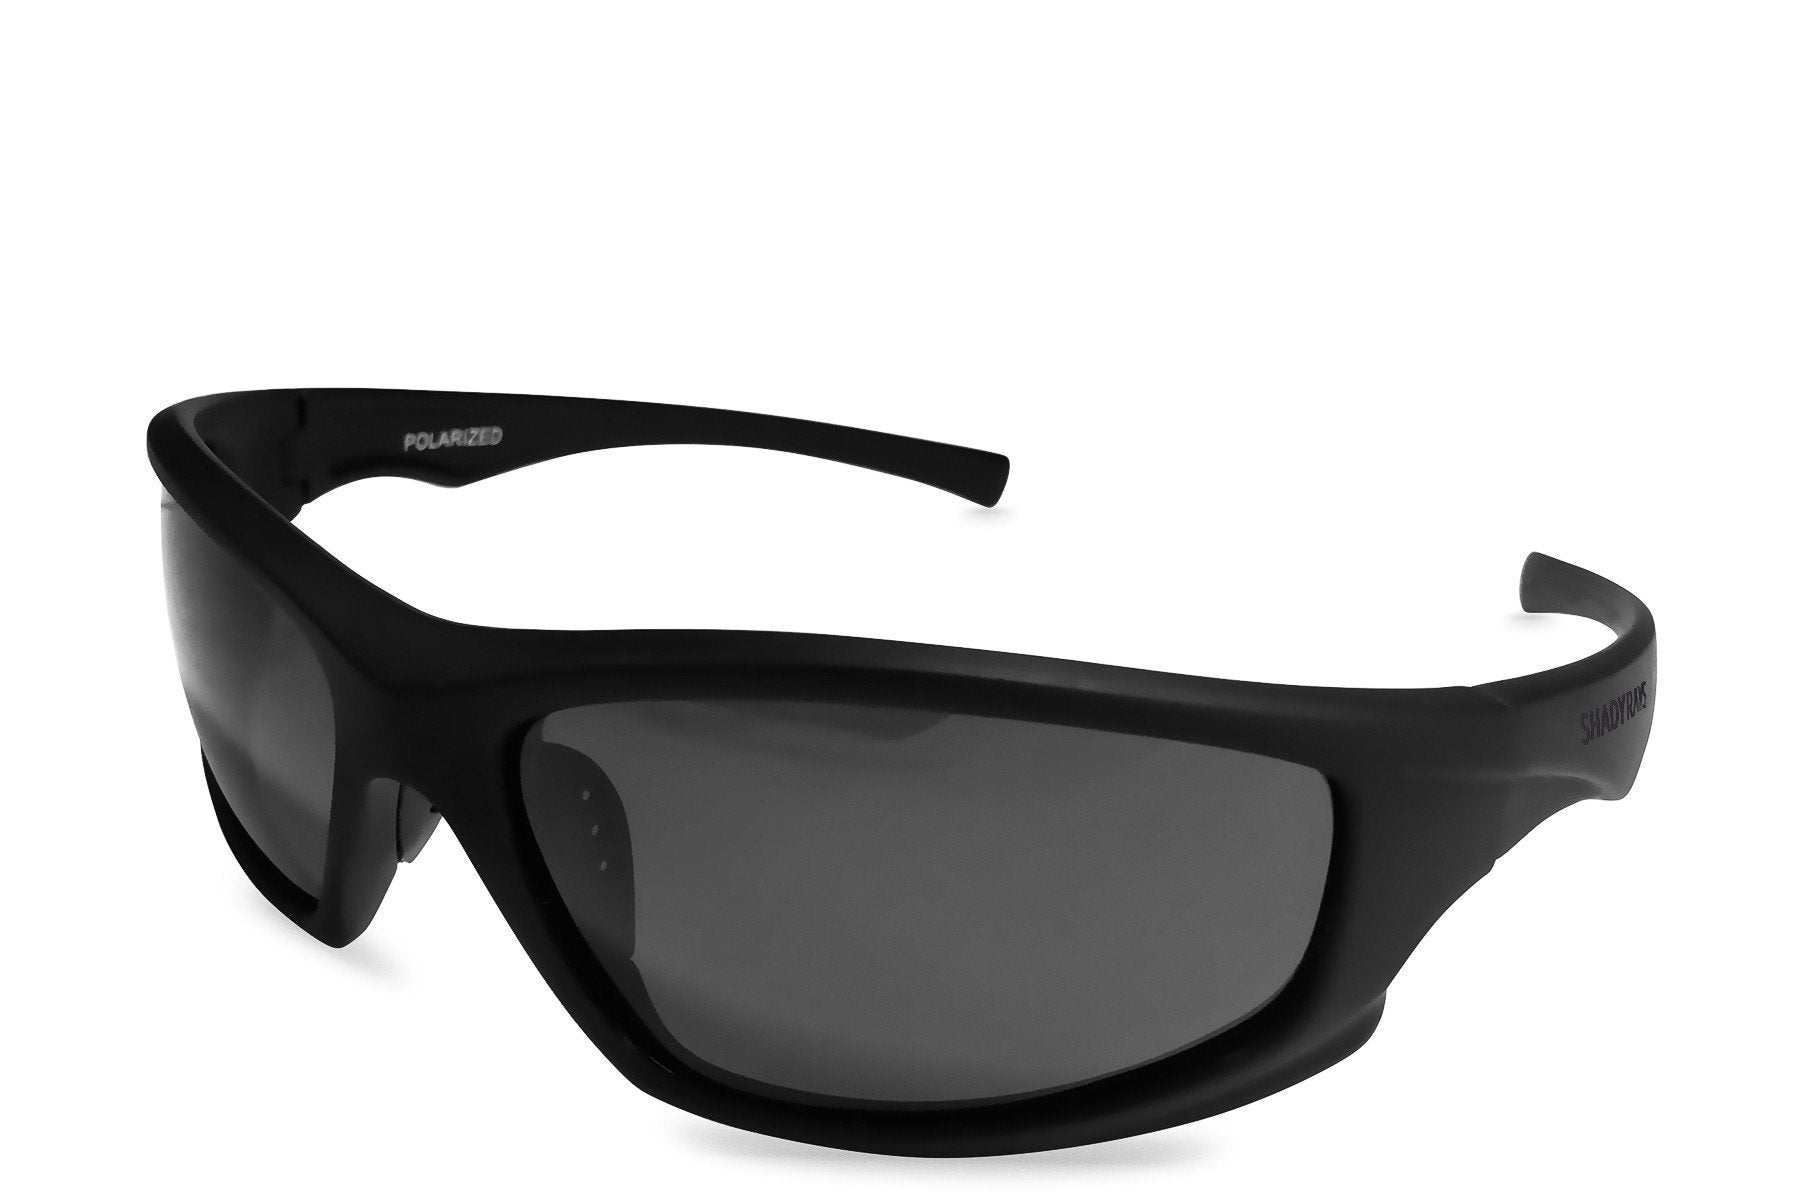 204f2d0a85 Shady Rays X Series - Blackout Polarized INCOGNITO Sunglasses